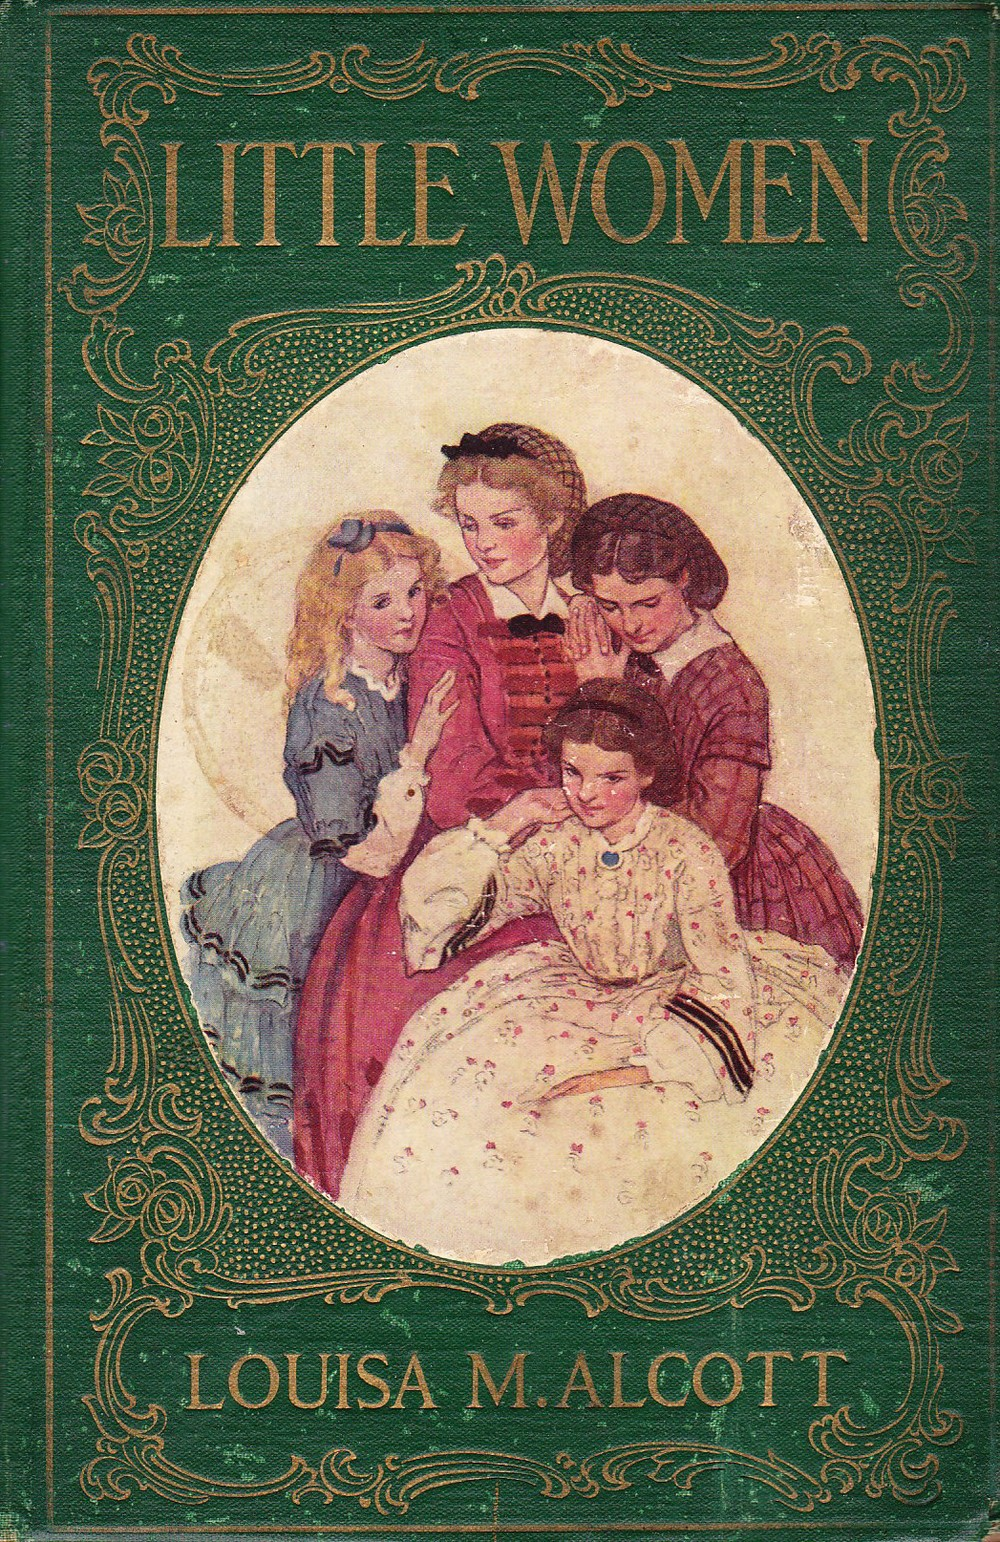 Little Women Louisa May Alcott.jpg